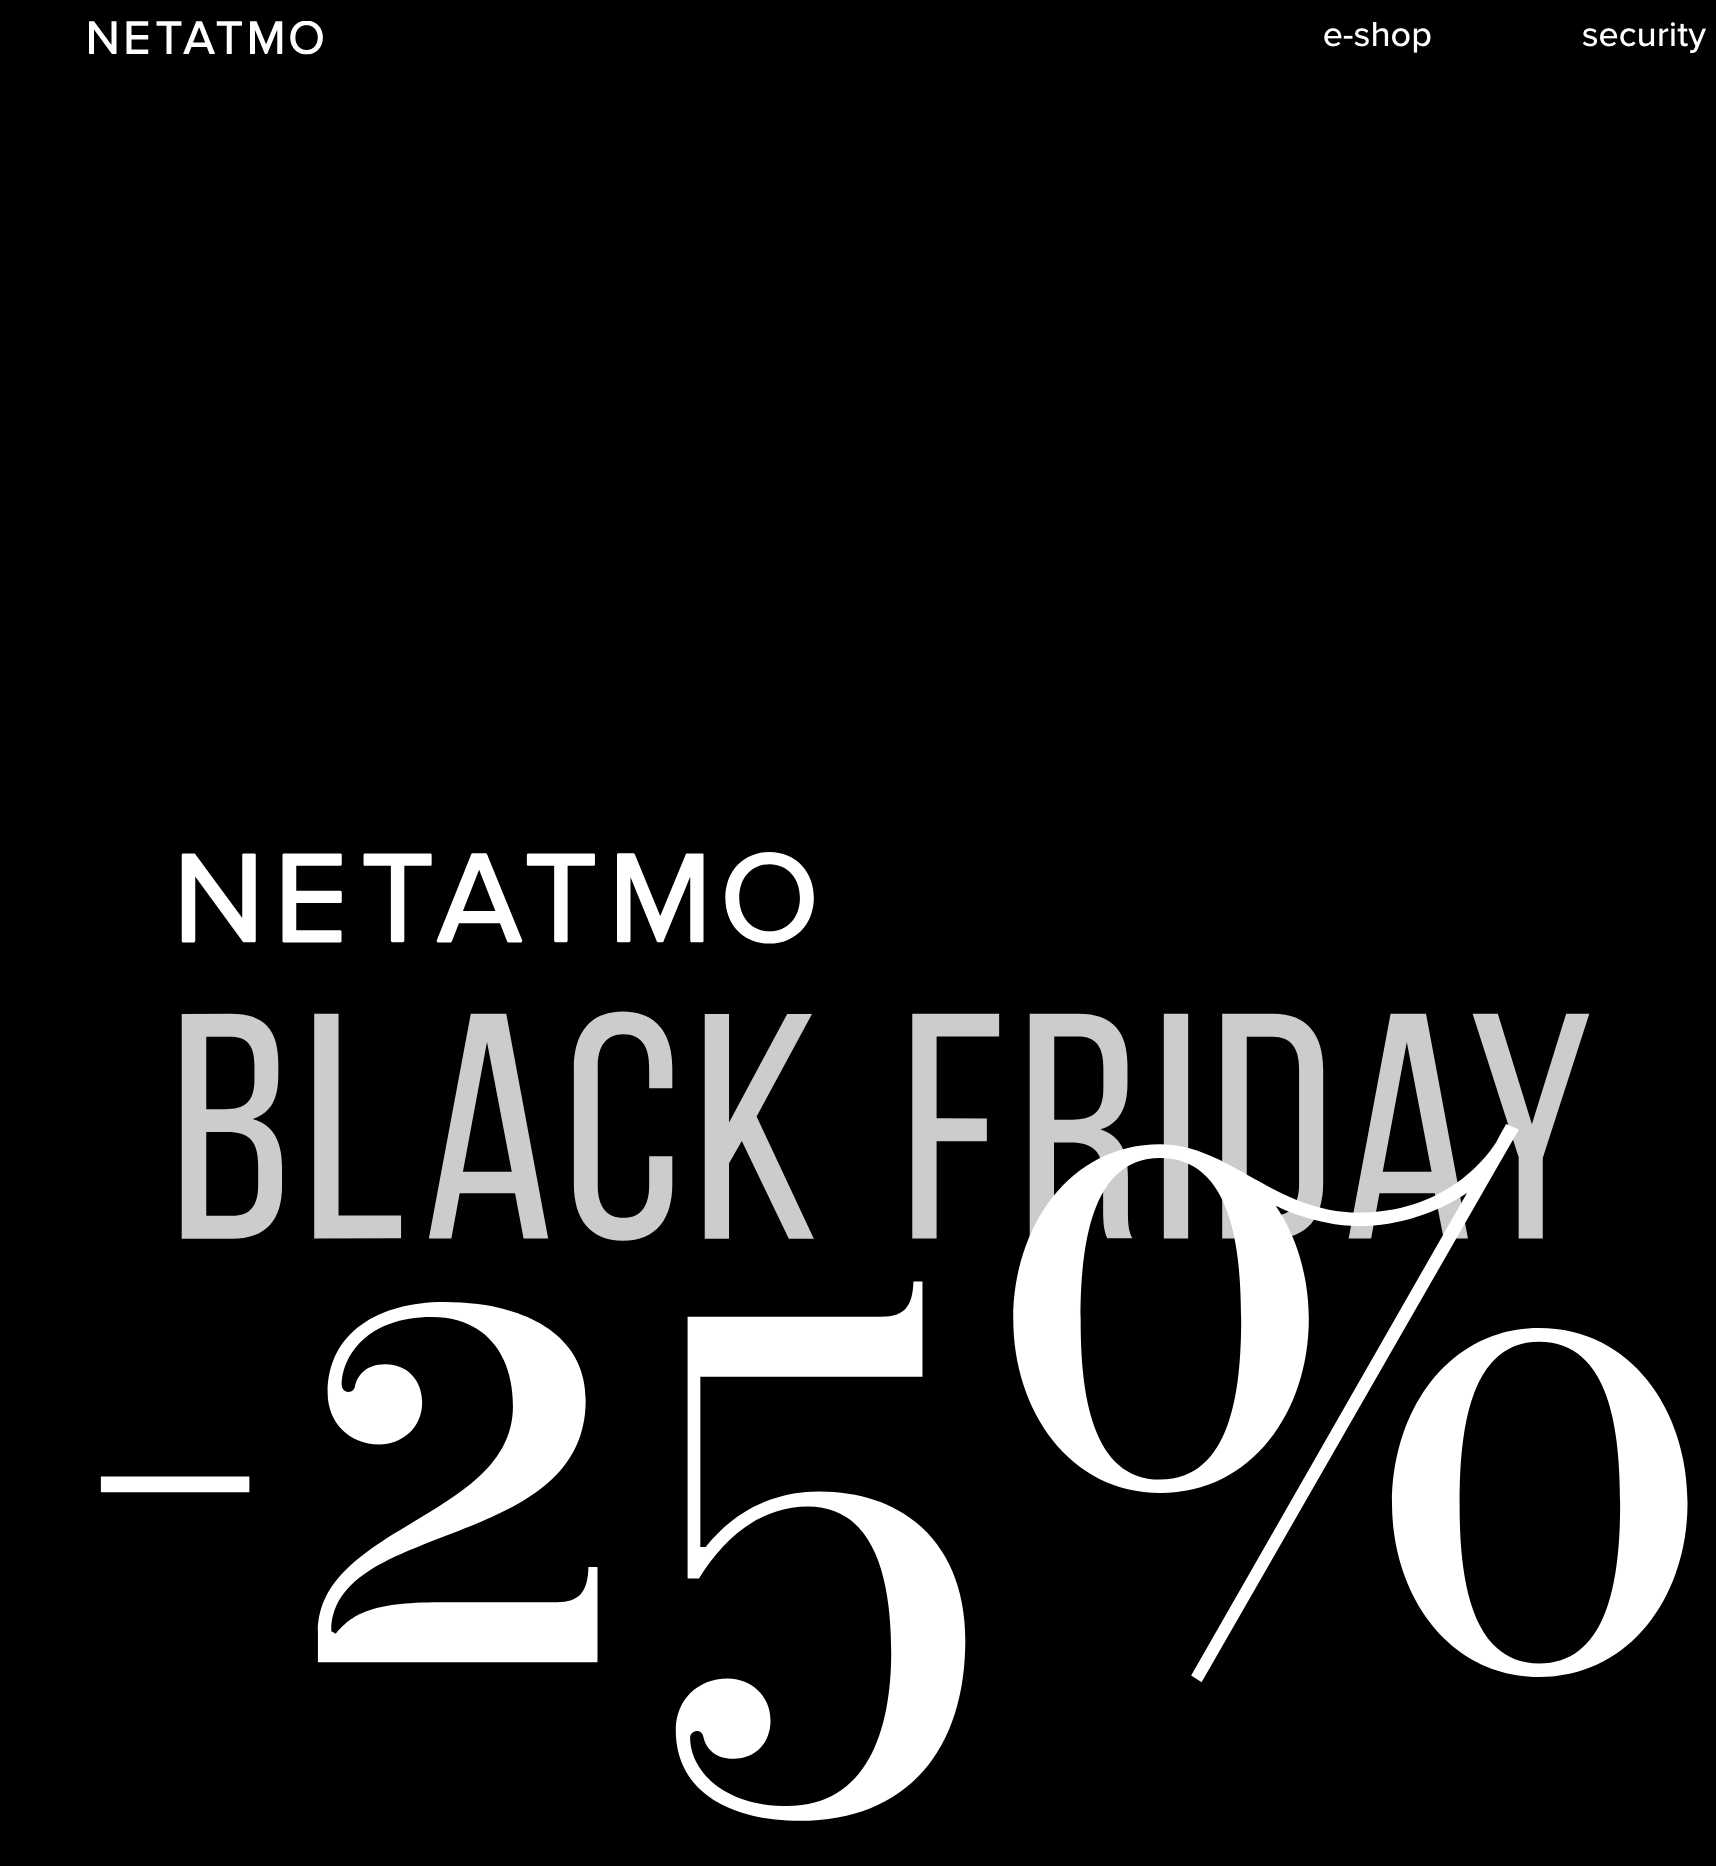 Black Friday Rabatt Netatmo Black Friday 25 Rabatt Auf Alles Mytopdeals